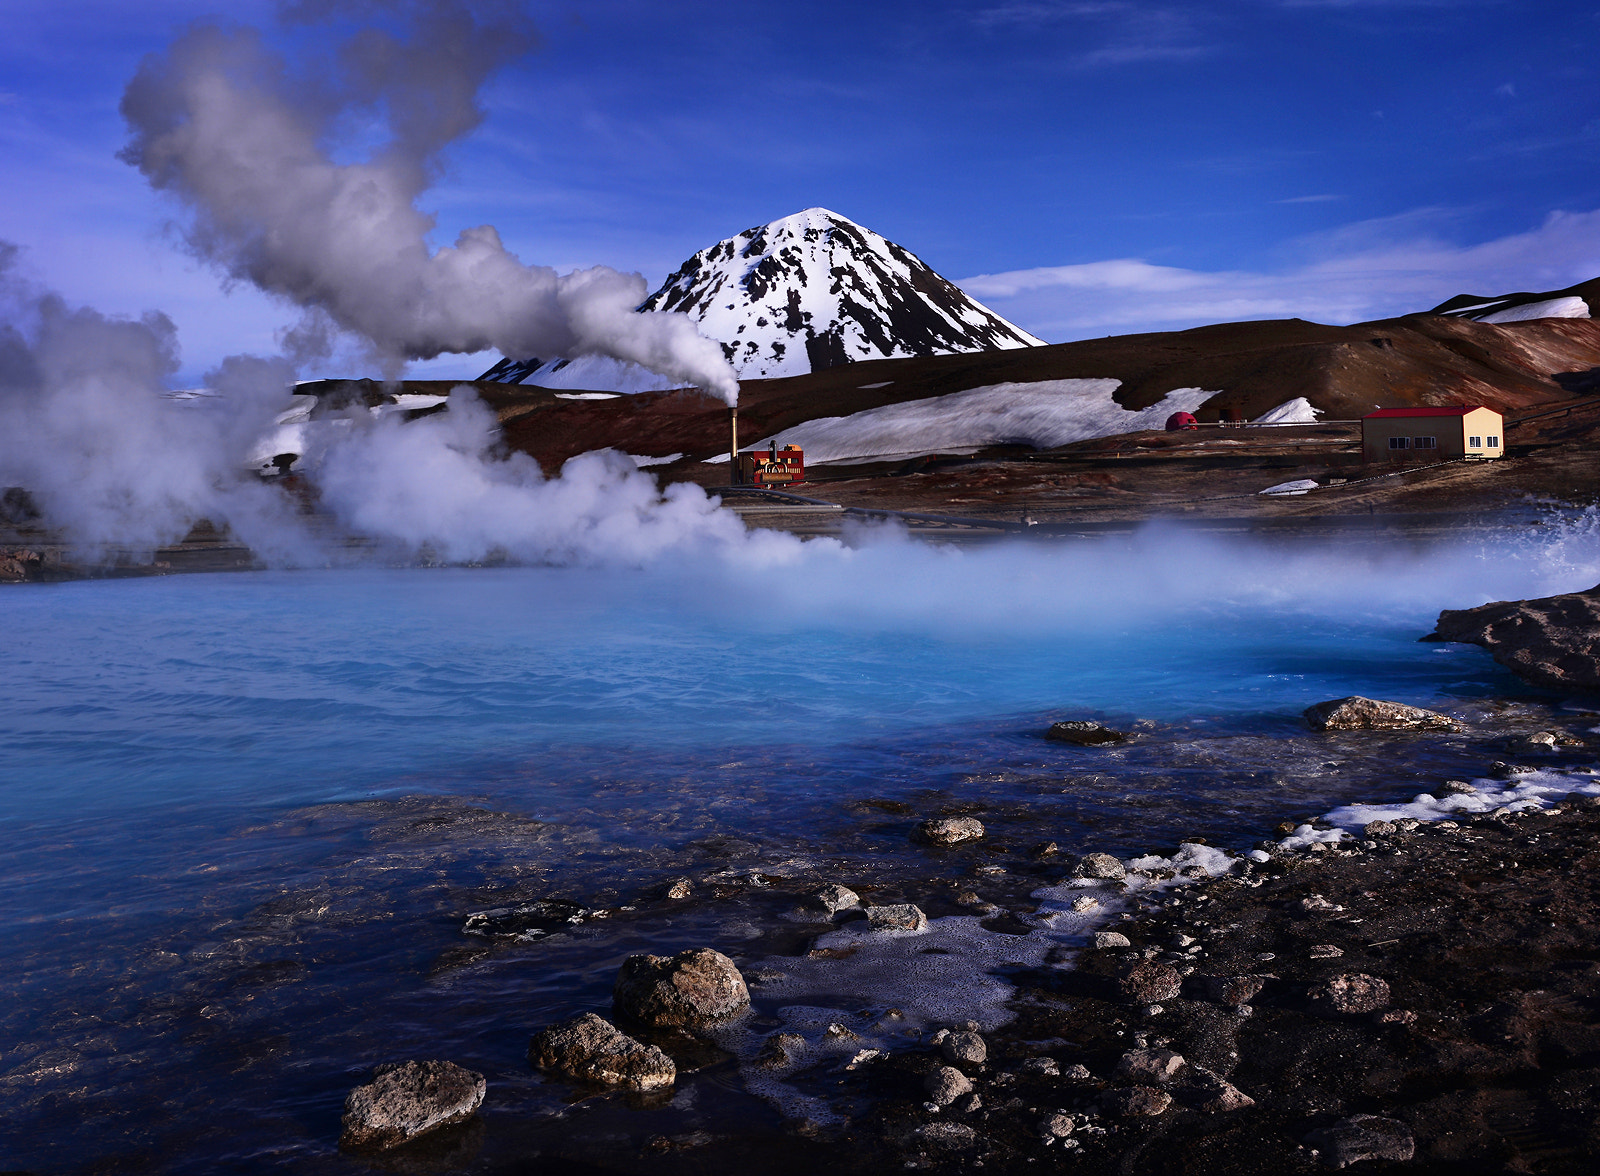 Photograph Geothermal station I by Weerapong Chaipuck on 500px